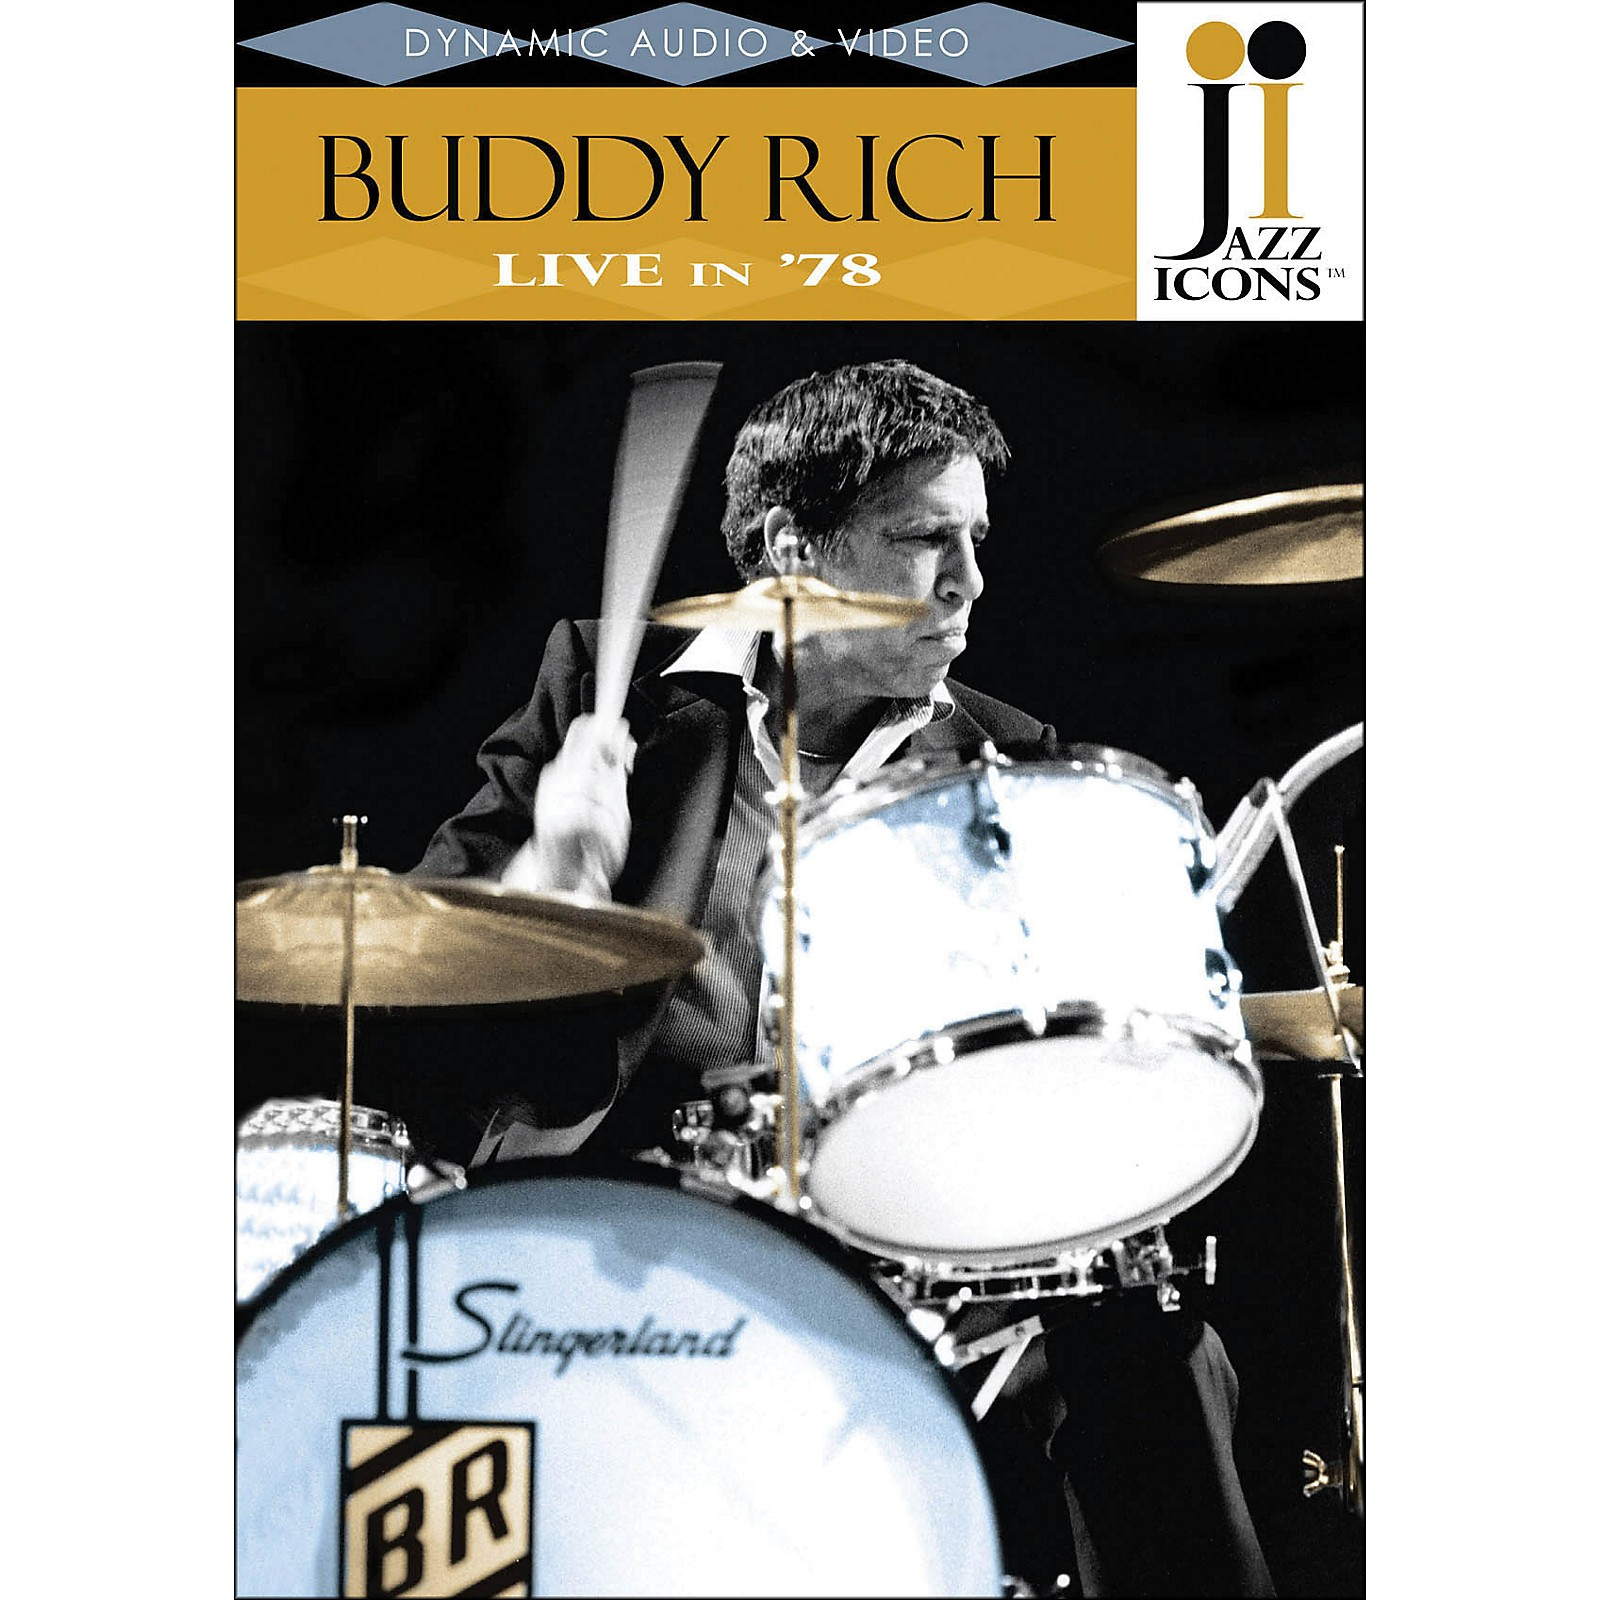 Hal Leonard Buddy Rich Live In '78 DVD Jazz Icons